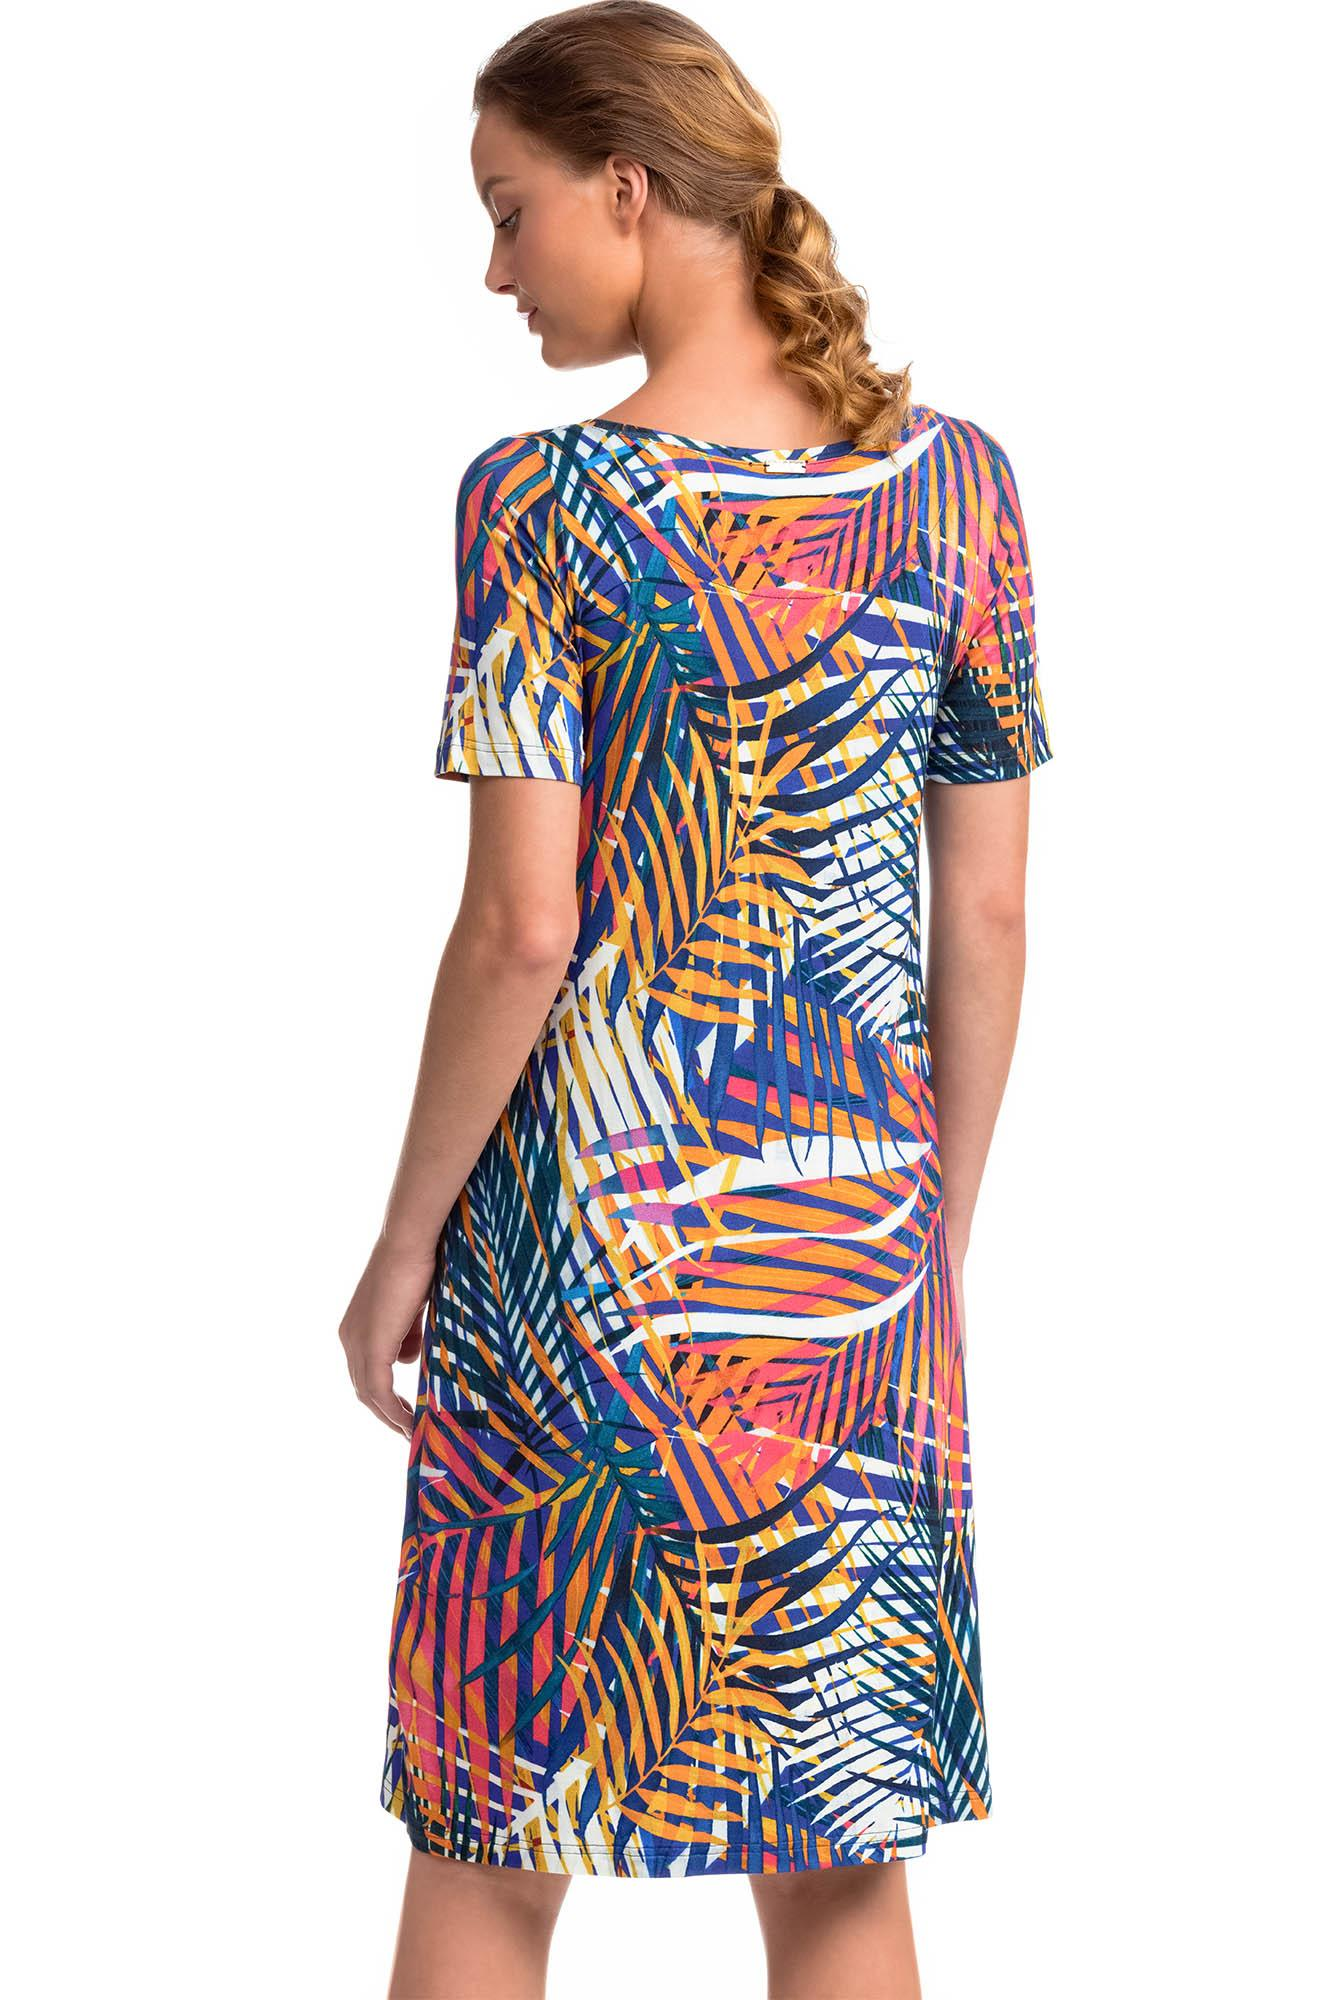 Tropical Short-Sleeved Dress